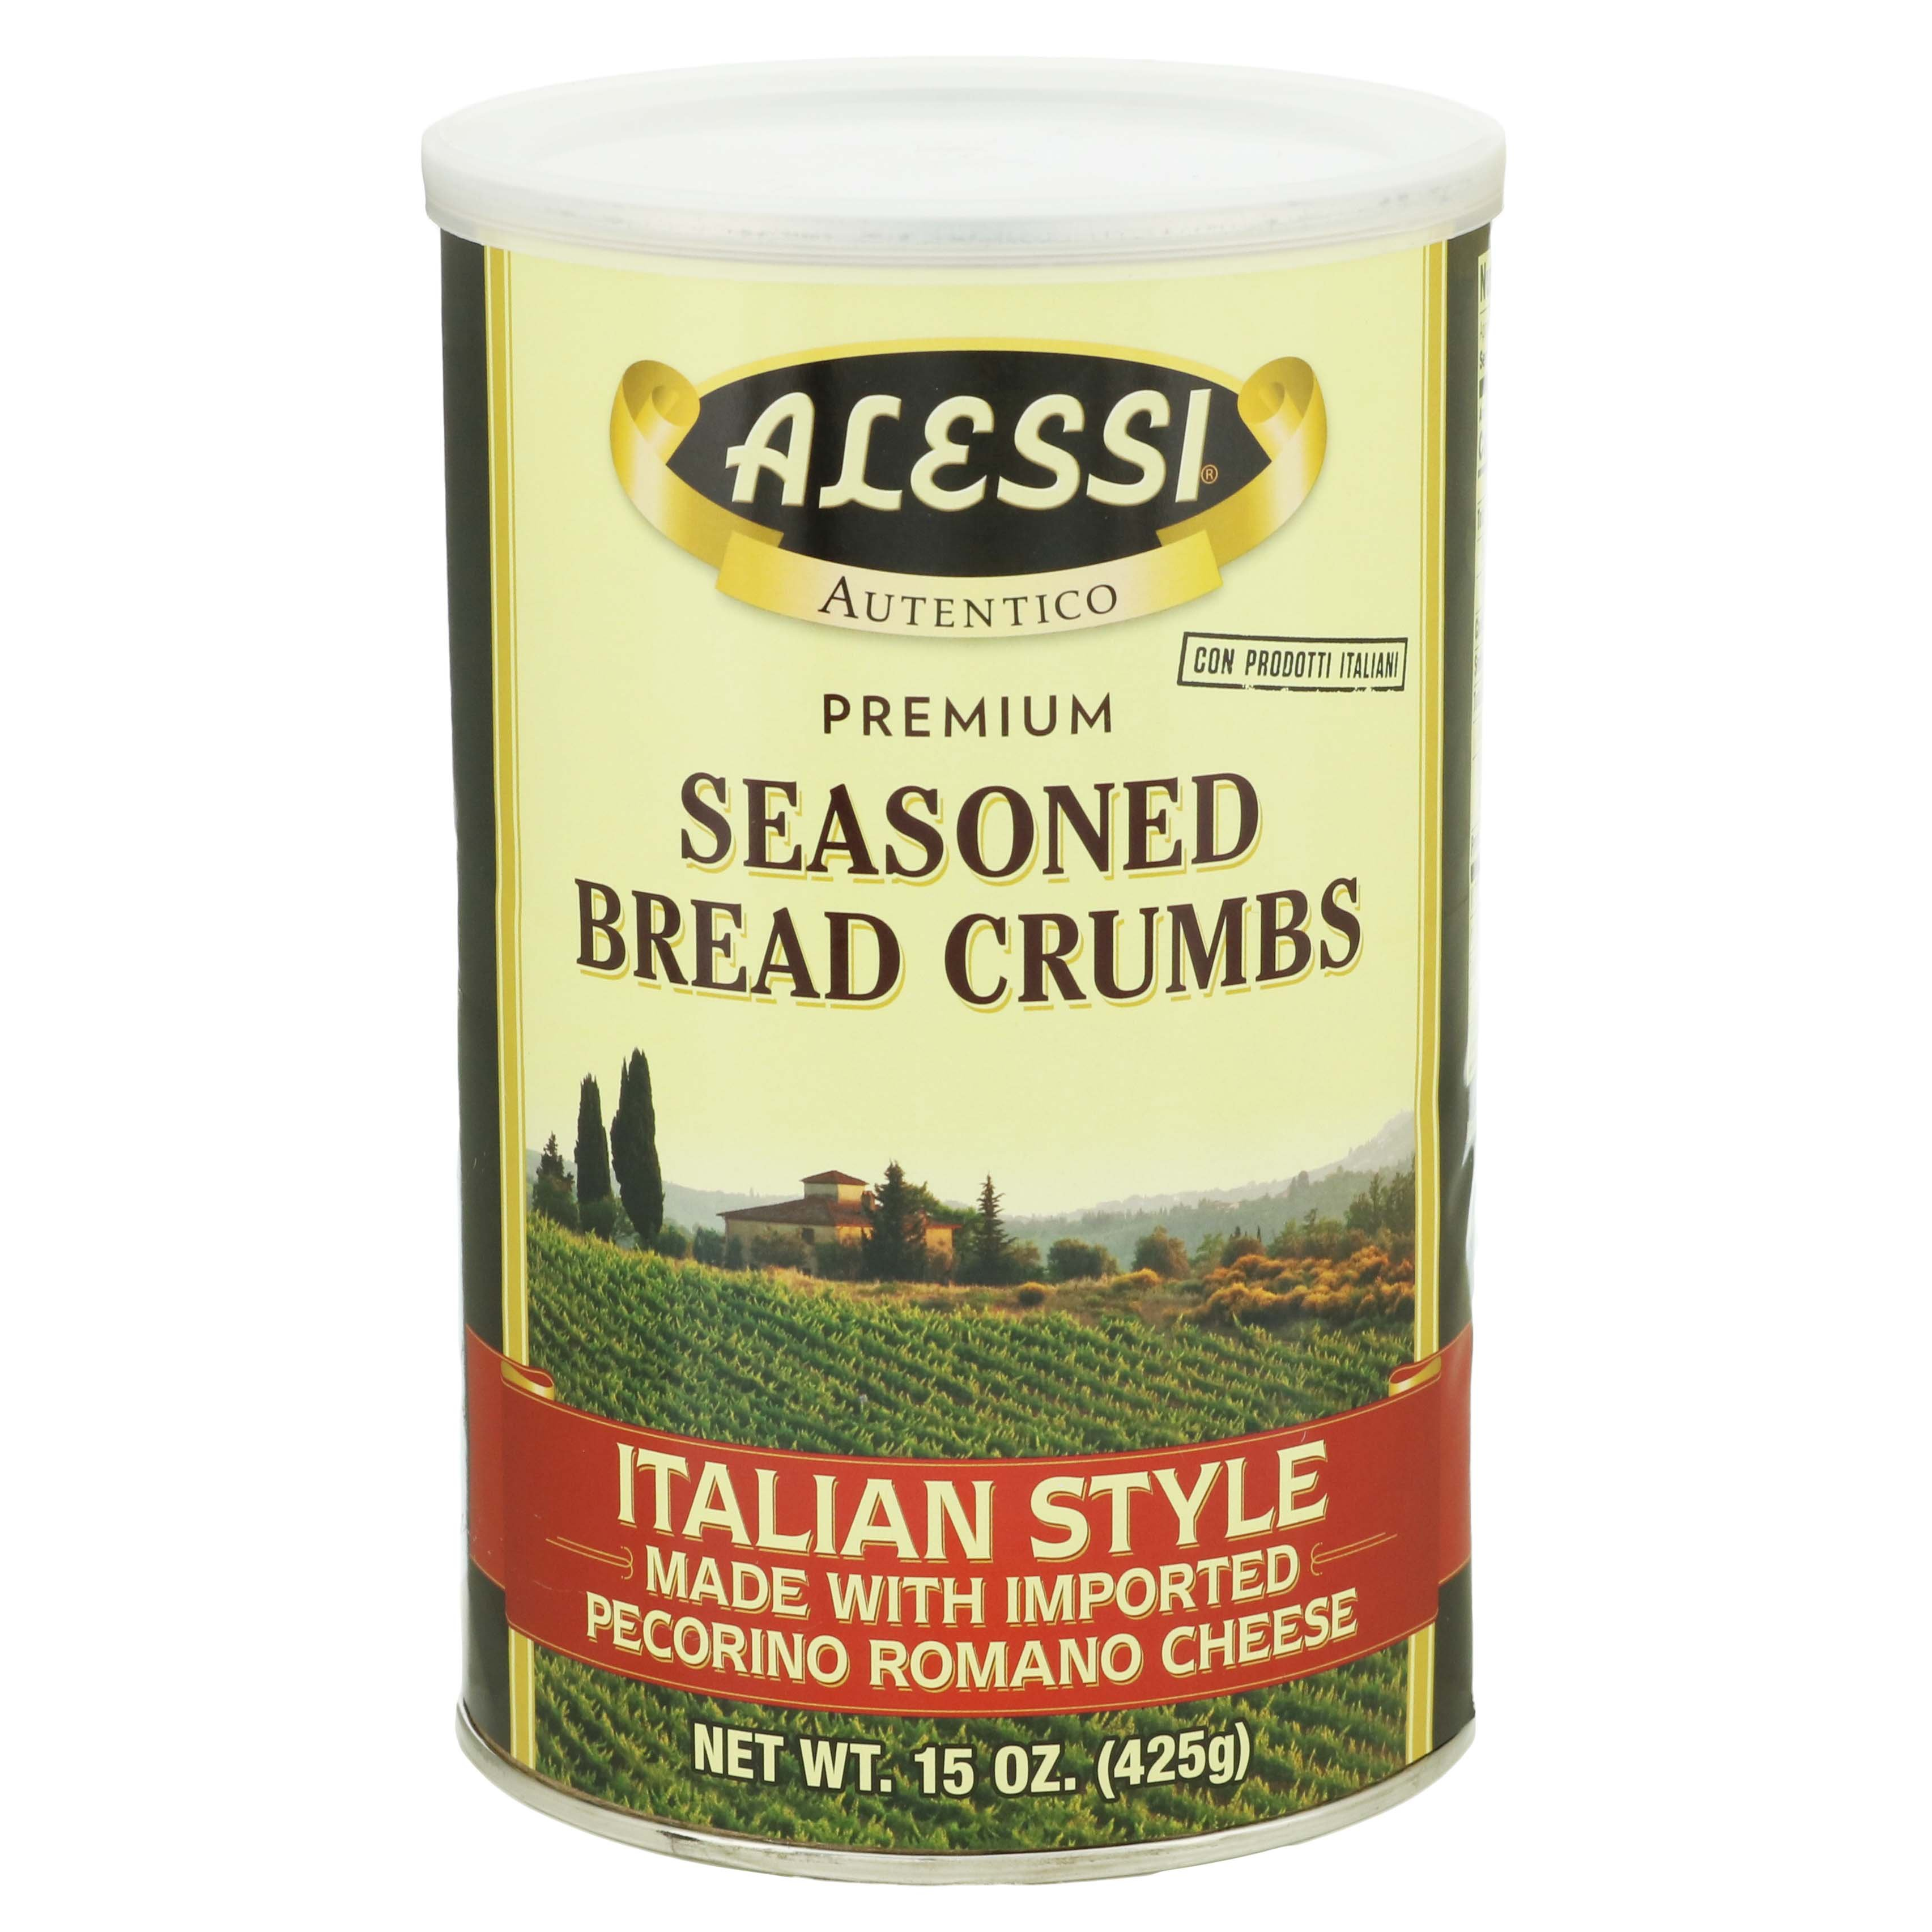 Alessi Bread Crumbs Italian Shop Breading Crumbs At H E B